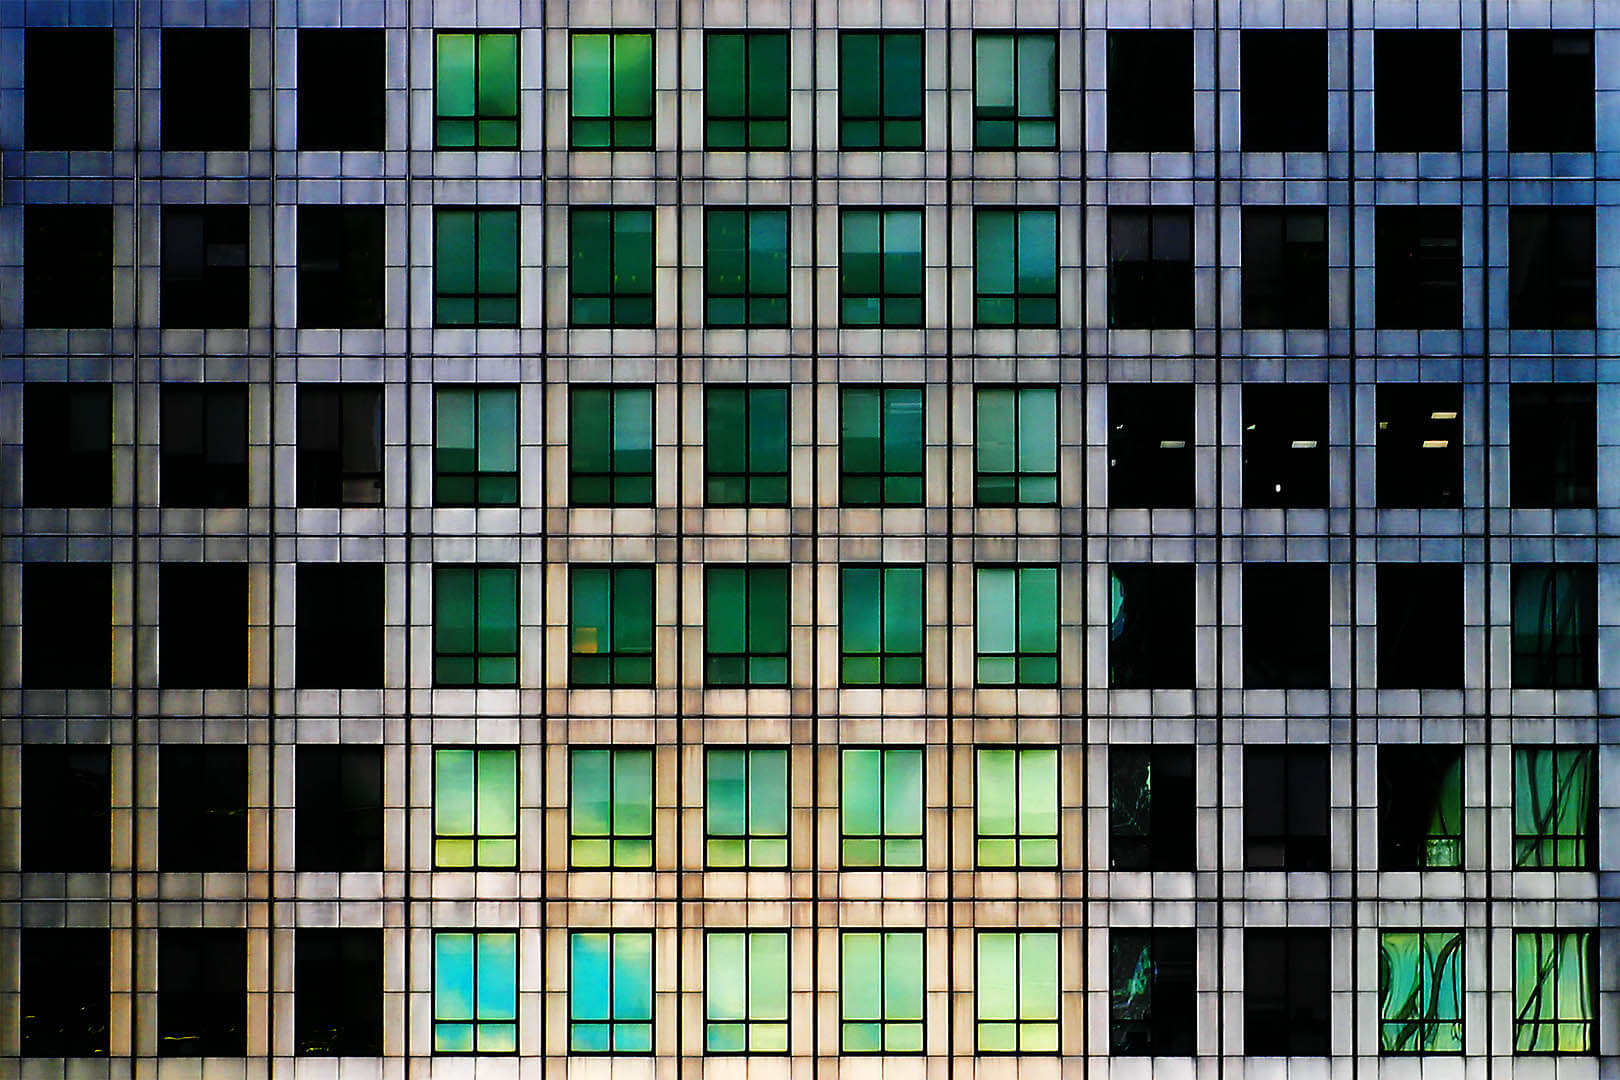 72 Windows